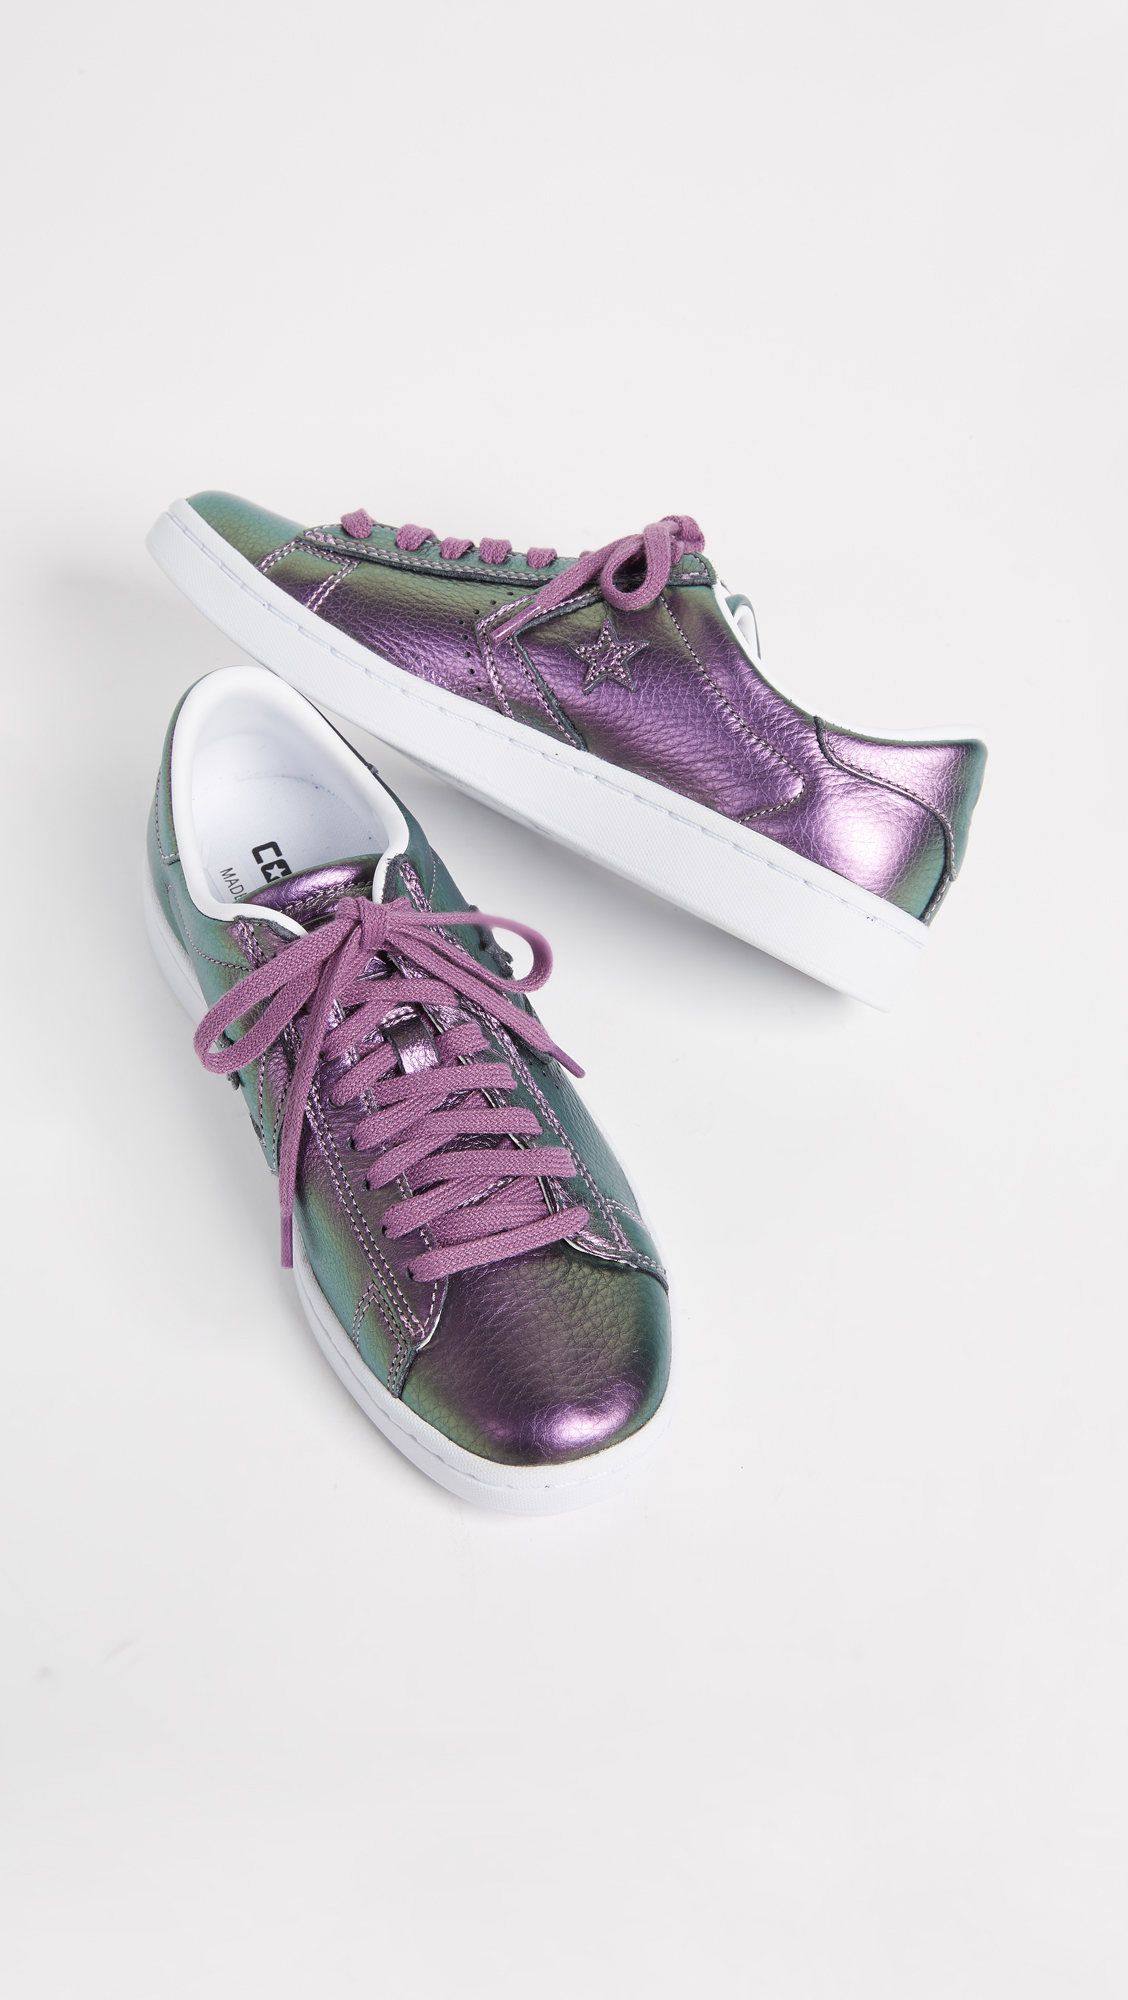 68ac0531b8a5b9 Converse Pro Leather LP Iridescent Ox Sneakers